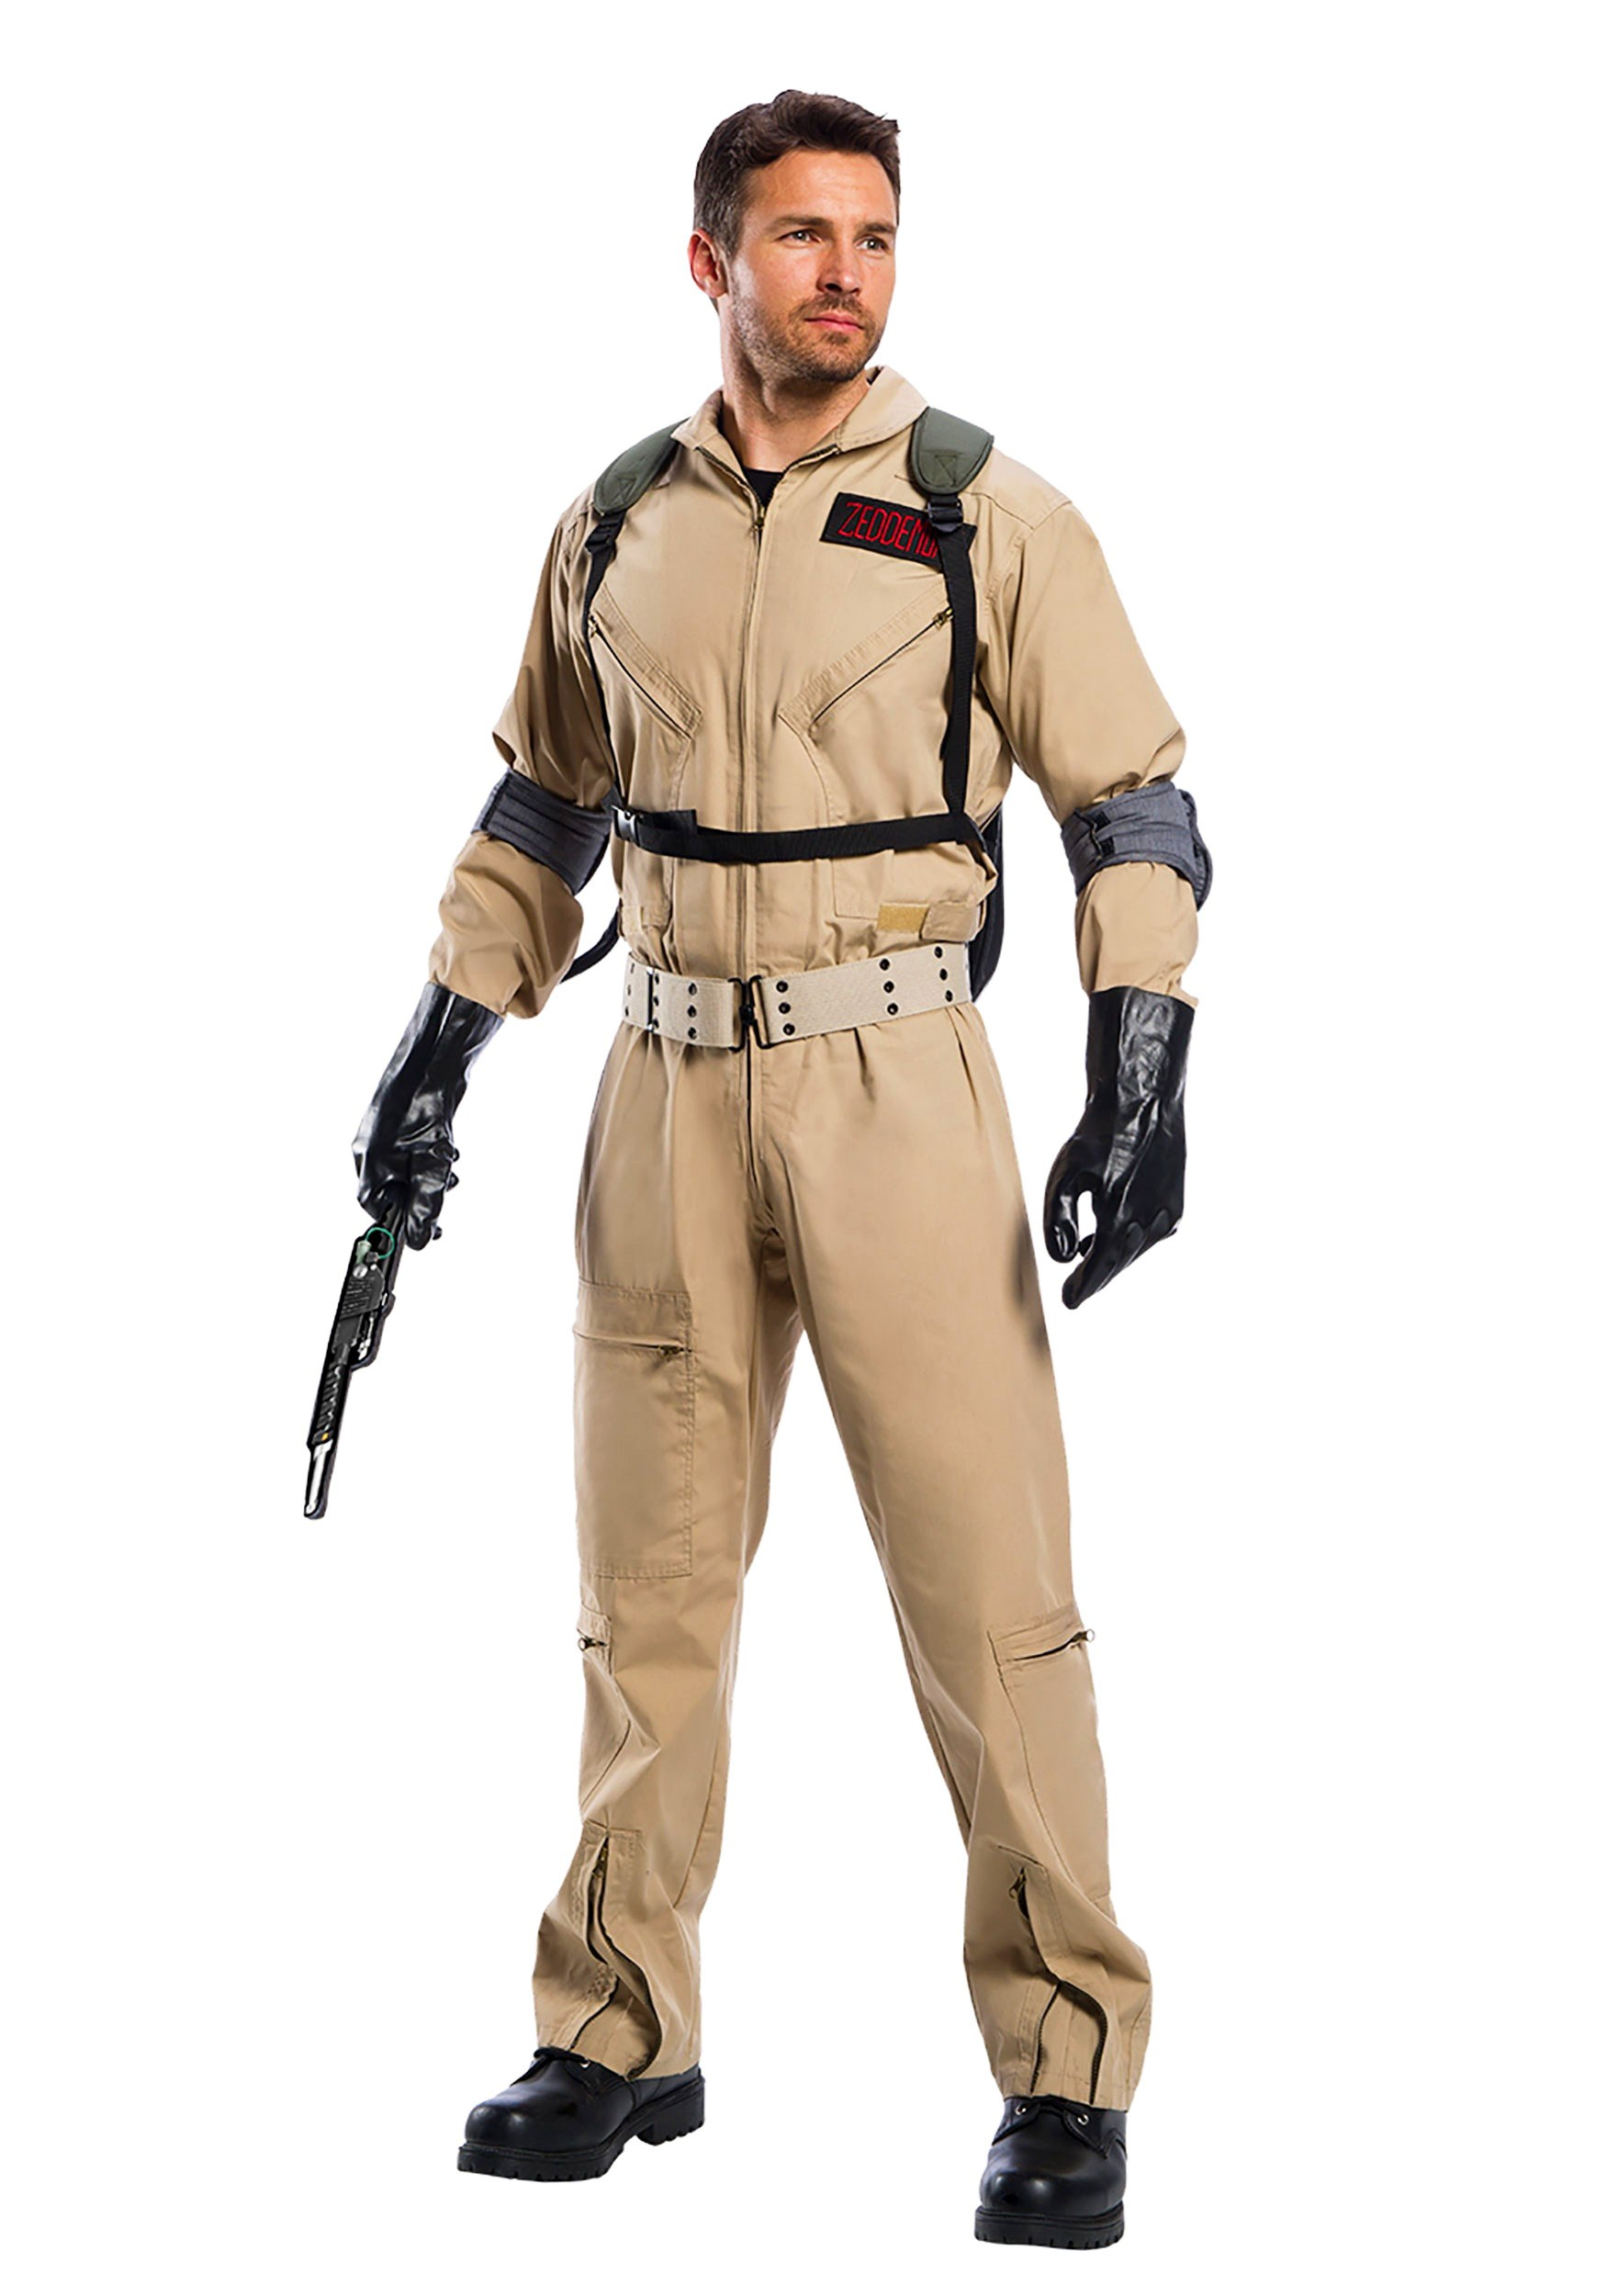 Premium Ghostbusters Costume for Adults